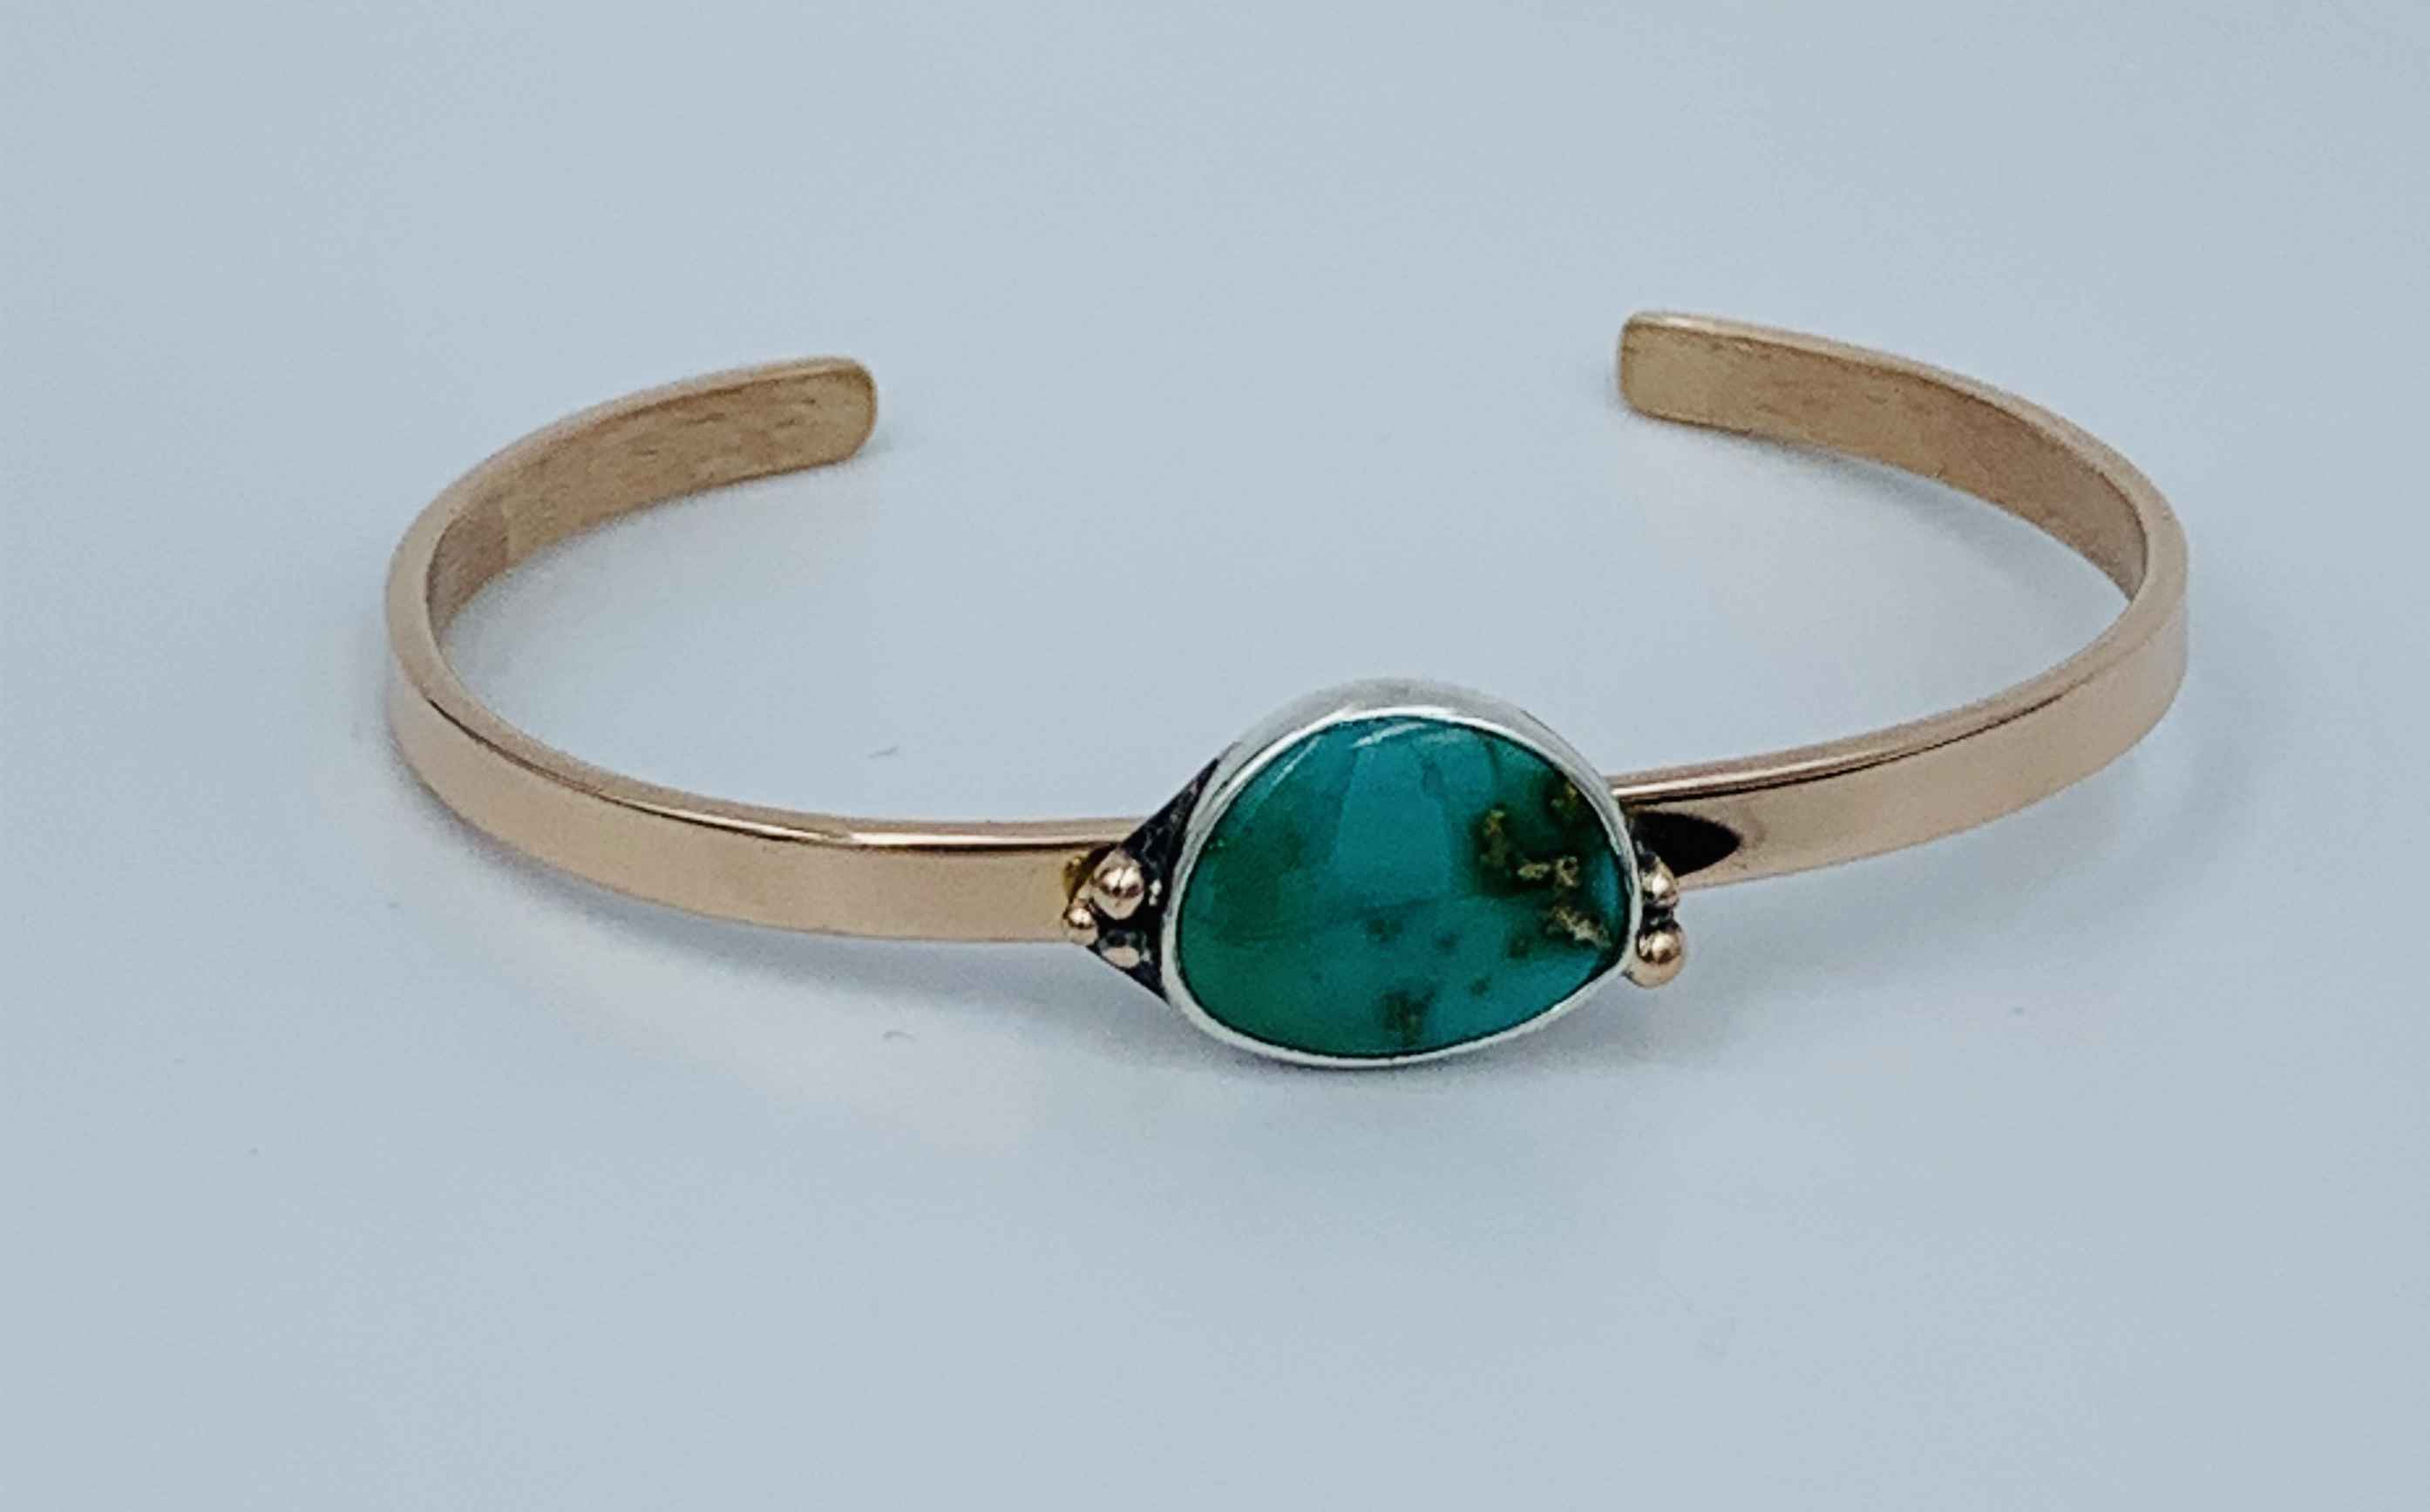 Stone Mountain Turquoise Bracelet 14kt rose gold, Sterling Silver and Turquoise 12mm x 59mm